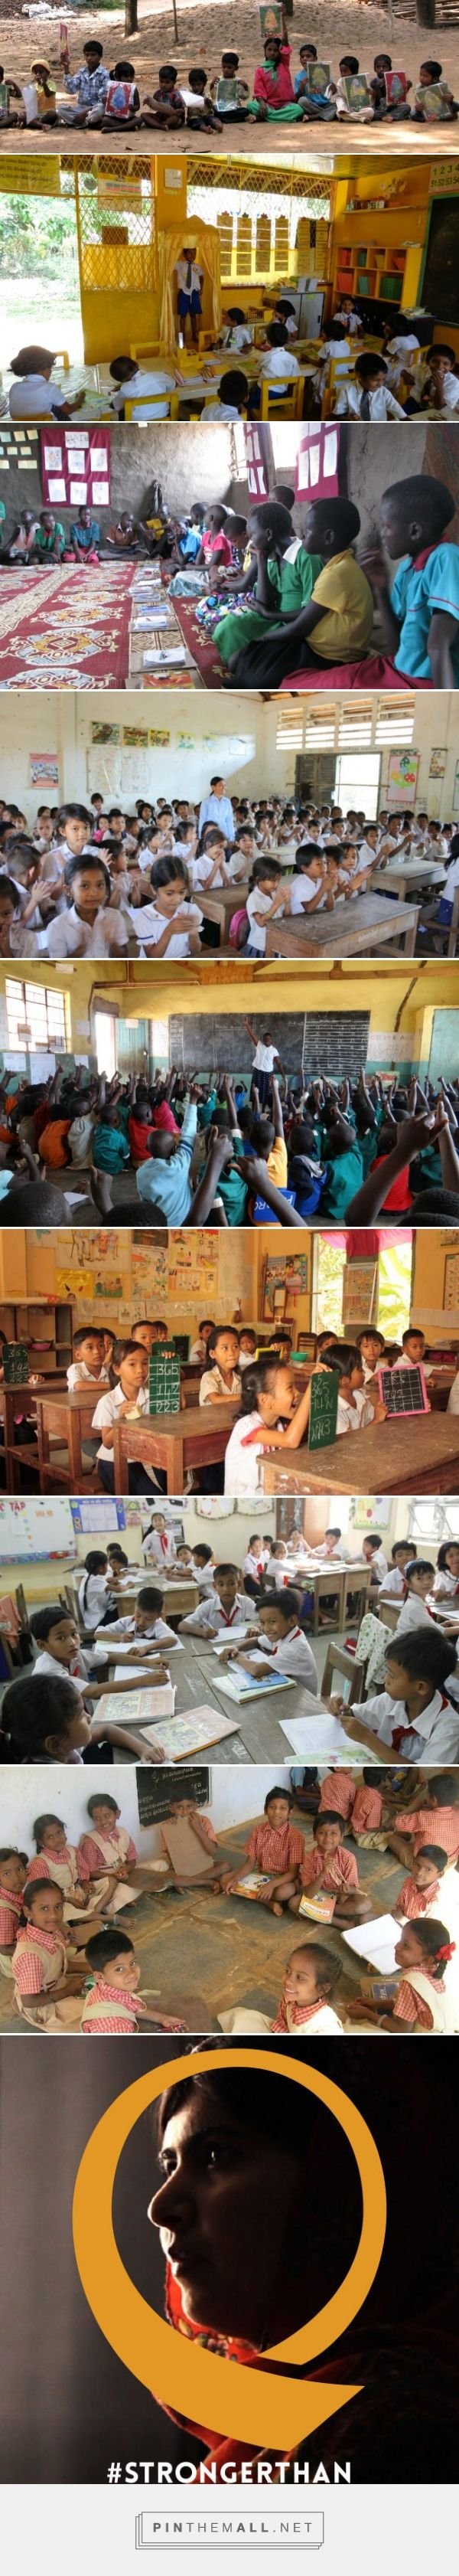 16 Classrooms That Show The Incredible Resilience of Students Around the World - I Am Malala